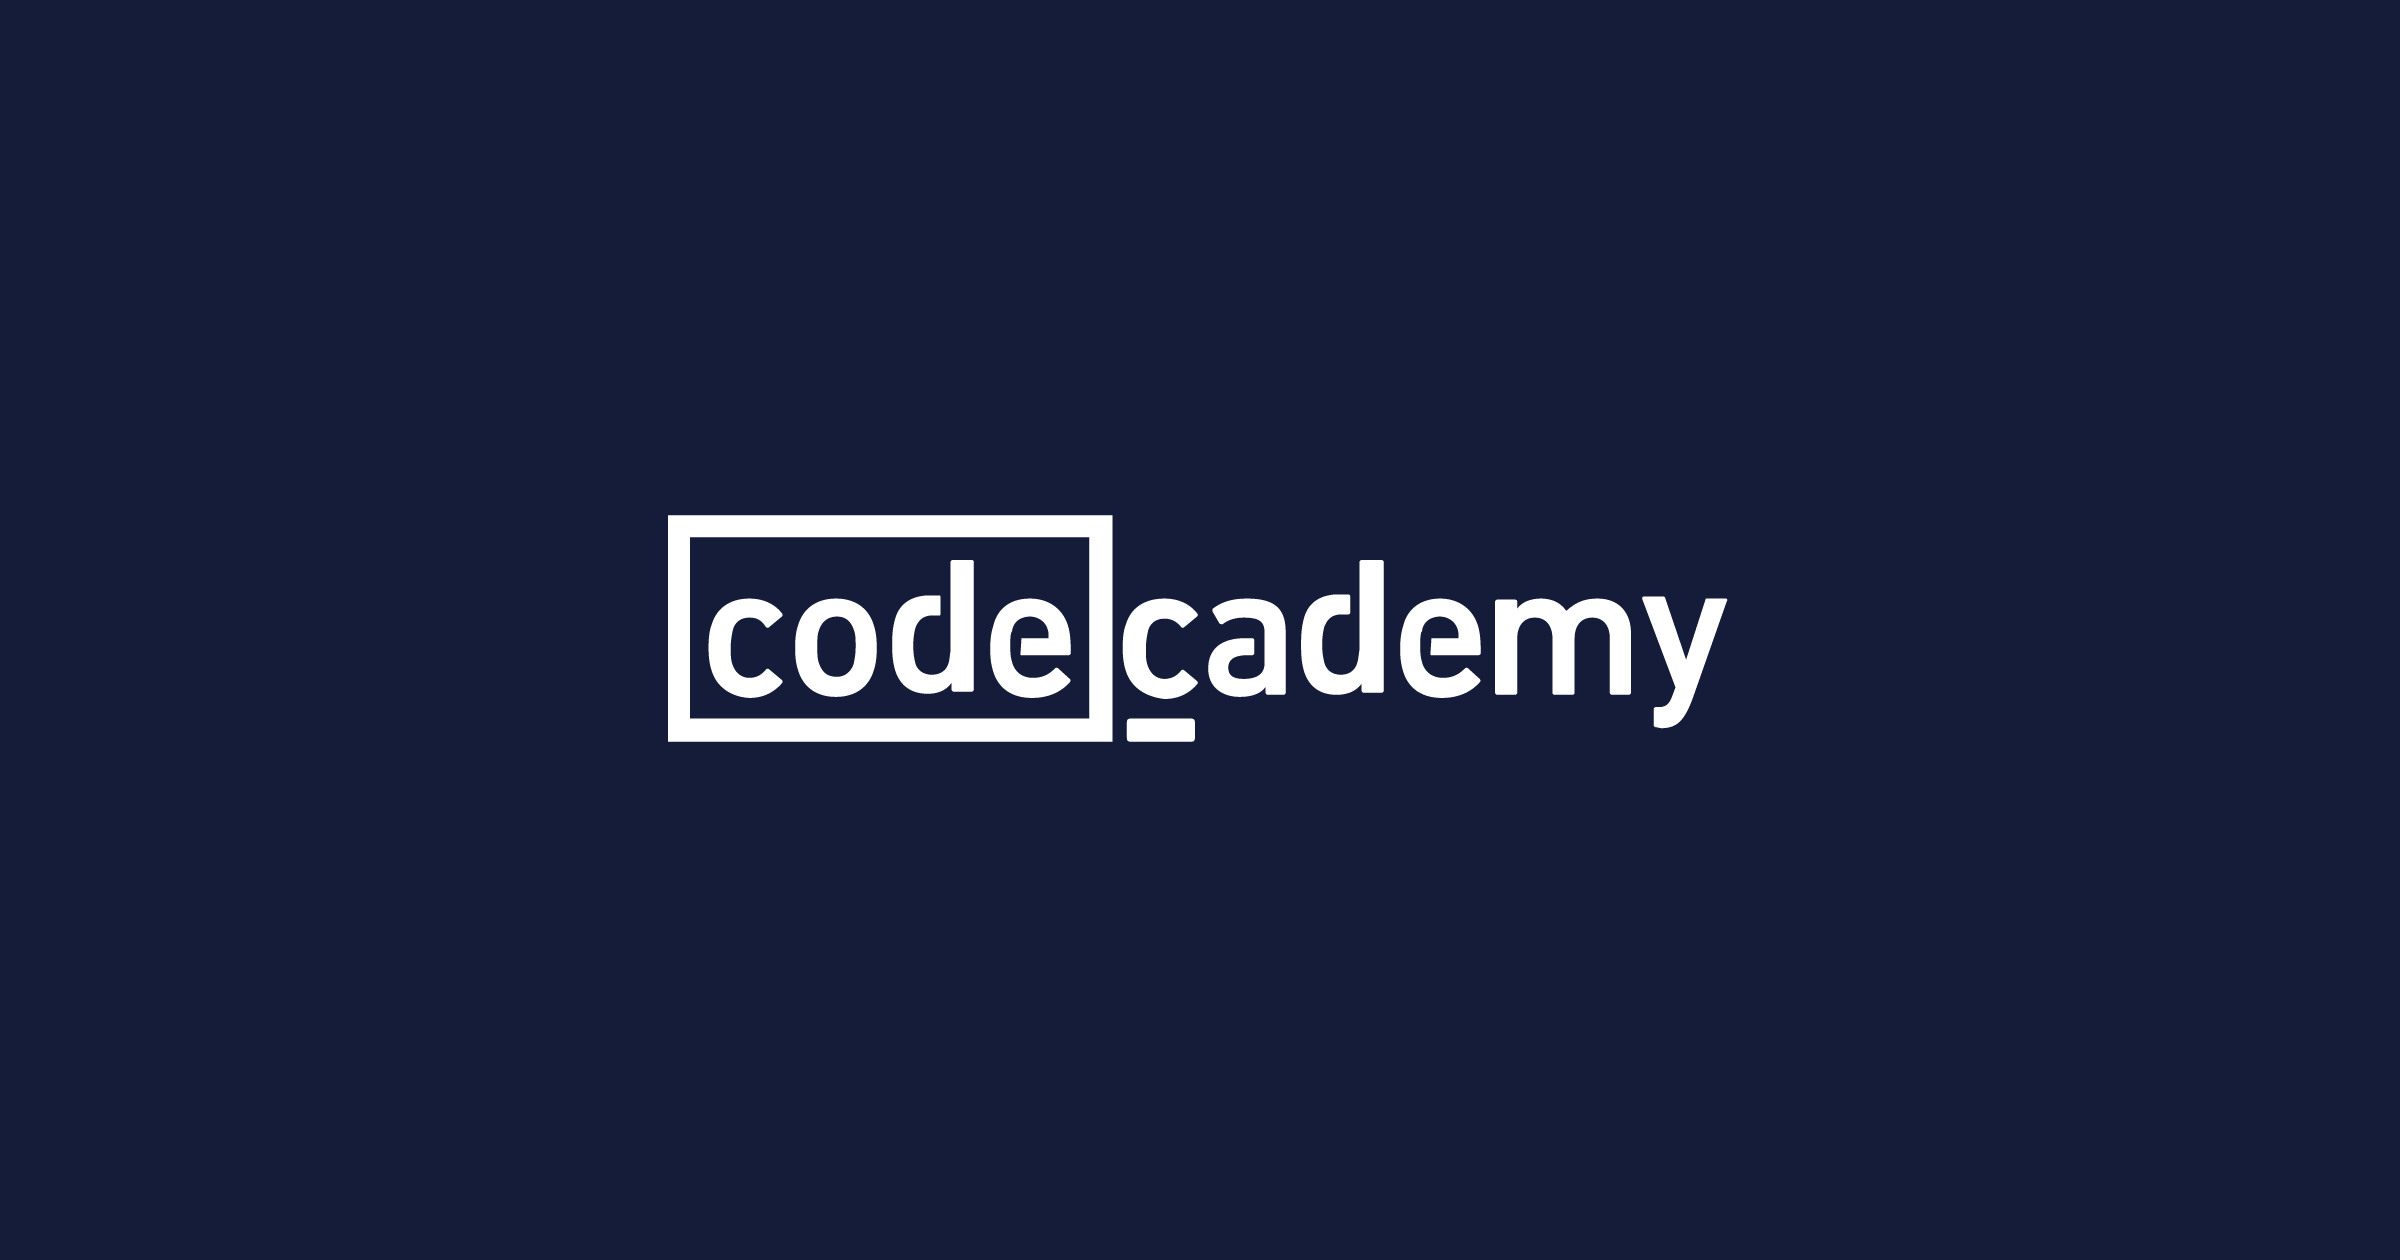 ReactJS Tutorial Part I: Learn ReactJS For Free | Codecademy